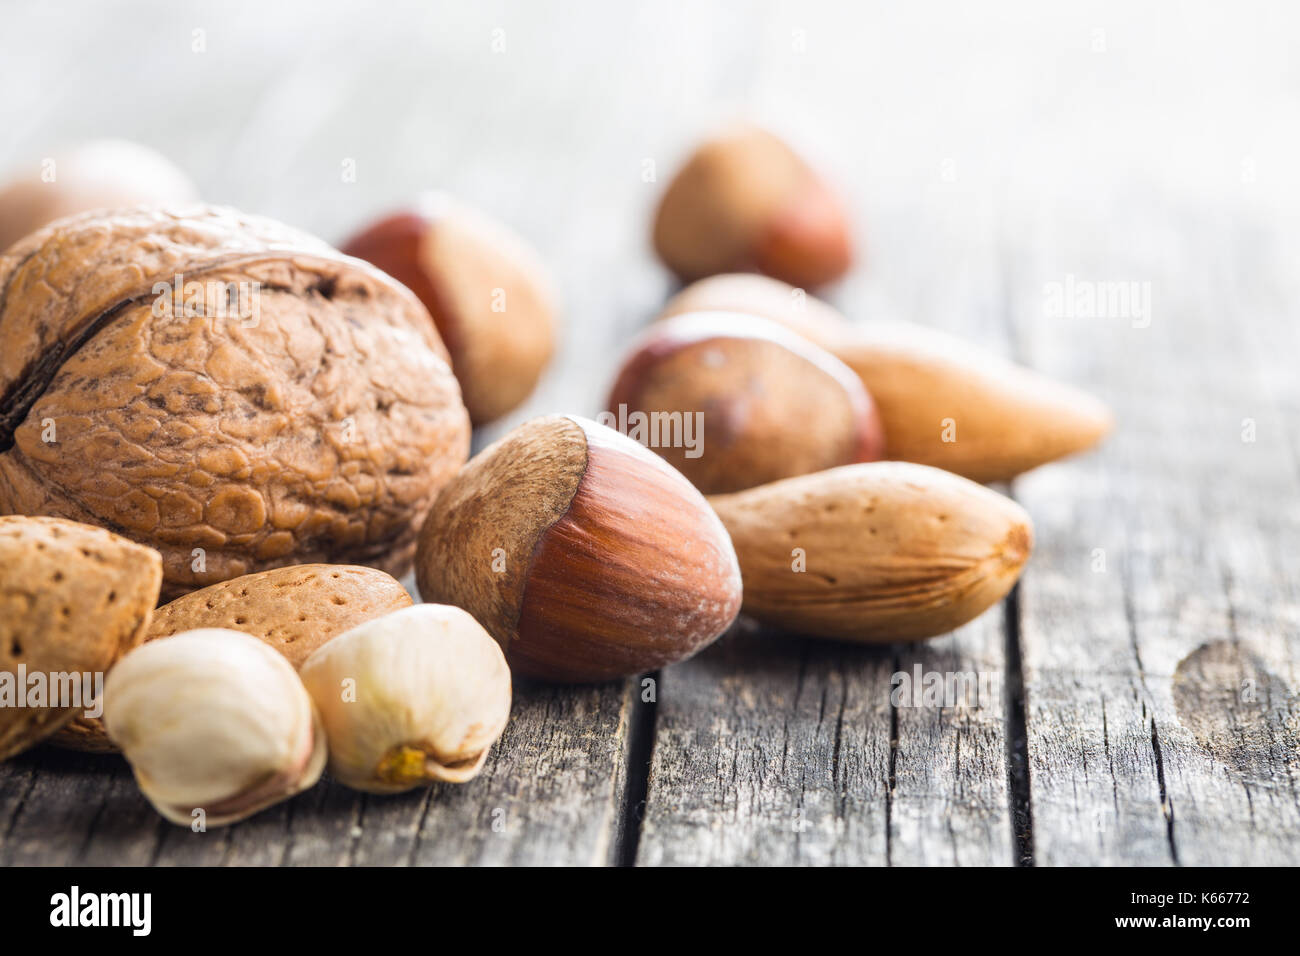 Different types of nuts in the nutshell. Hazelnuts, walnuts, almonds, pecan nuts and pistachio nuts on old wooden table. - Stock Image